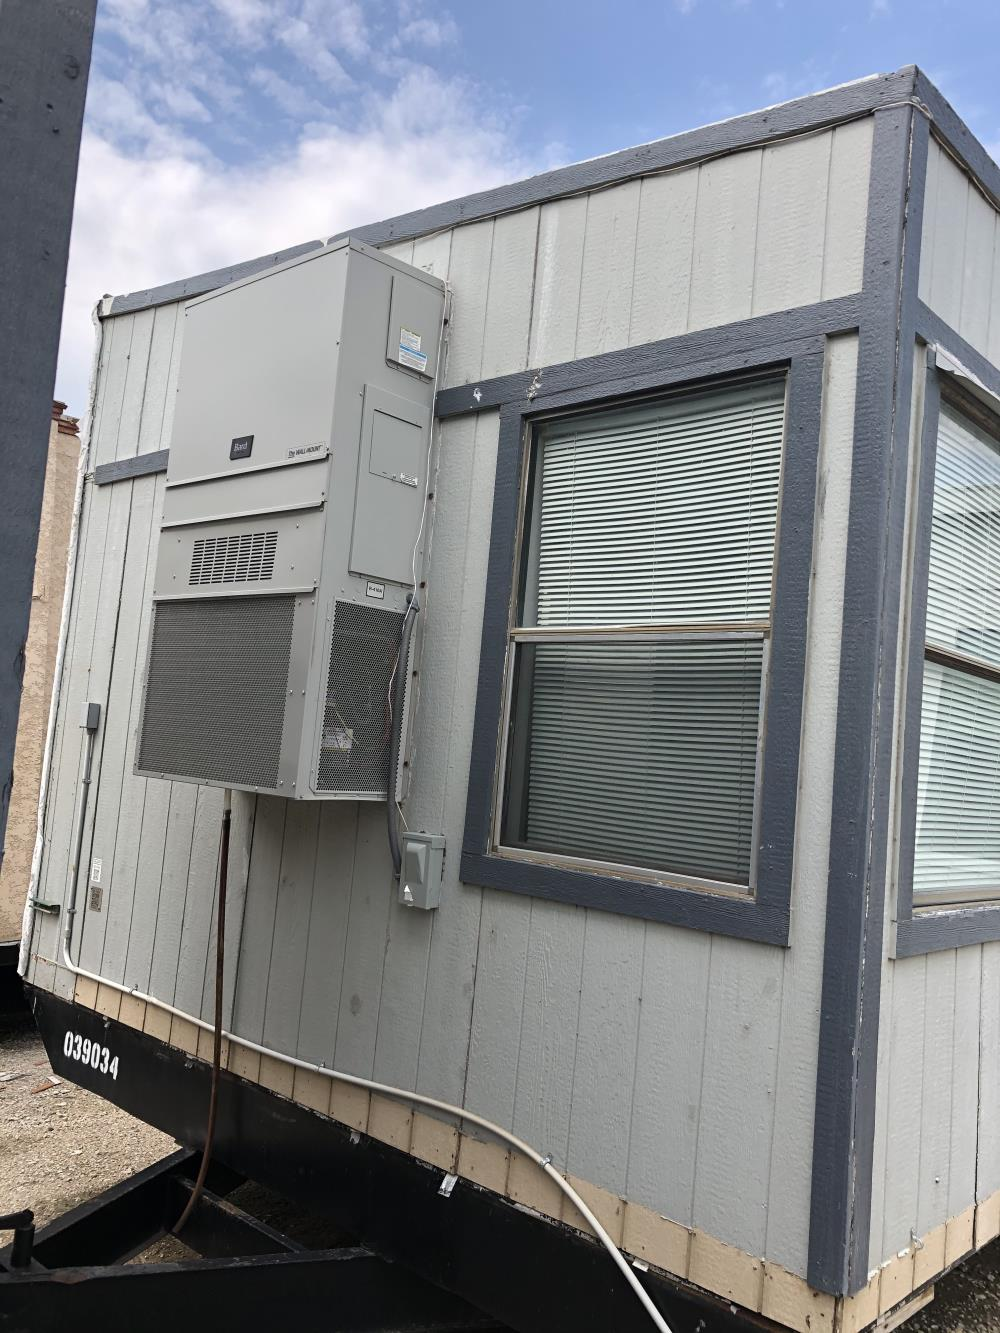 64'x28' Section Modular for sale in Dallas North - CPX-108255 -1